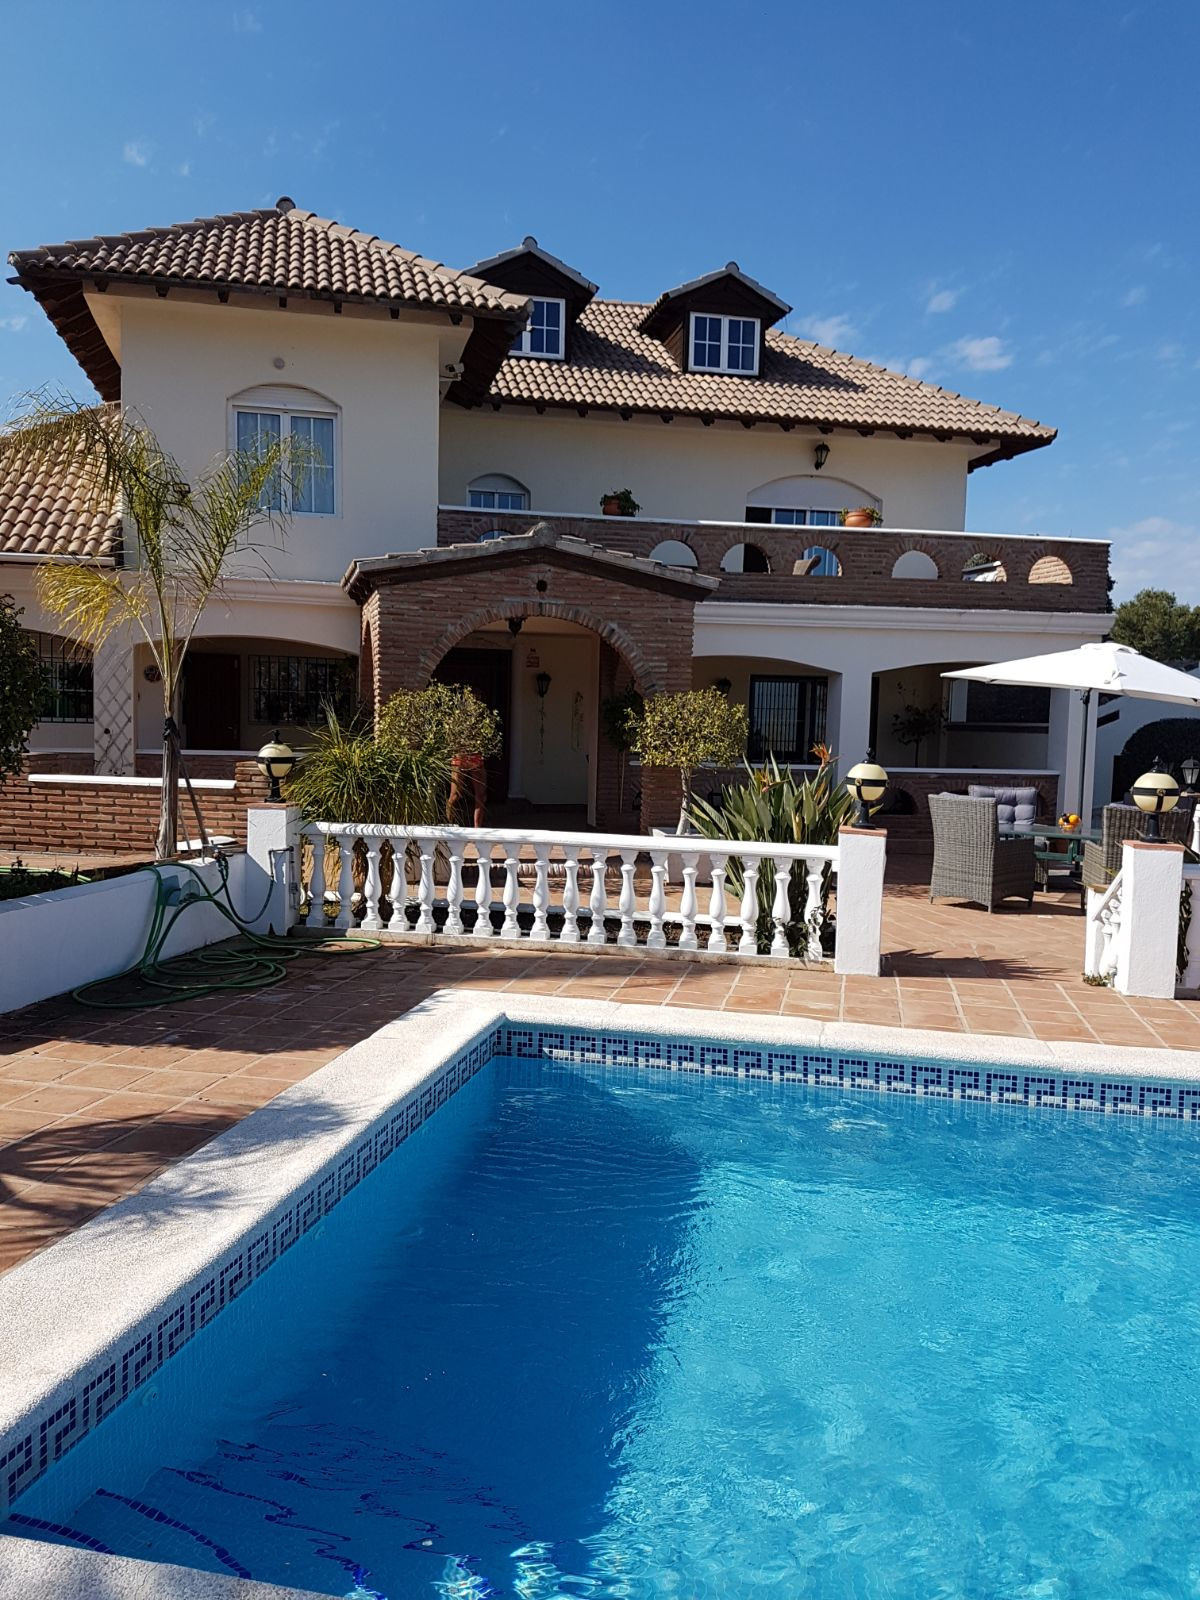 EXCEPTIONAL & TRULY BEAUTIFUL 3 BEDROOM VILLA LOCATED IN A STUNNING SETTING WITH A LARGE PRIVATE,Spain